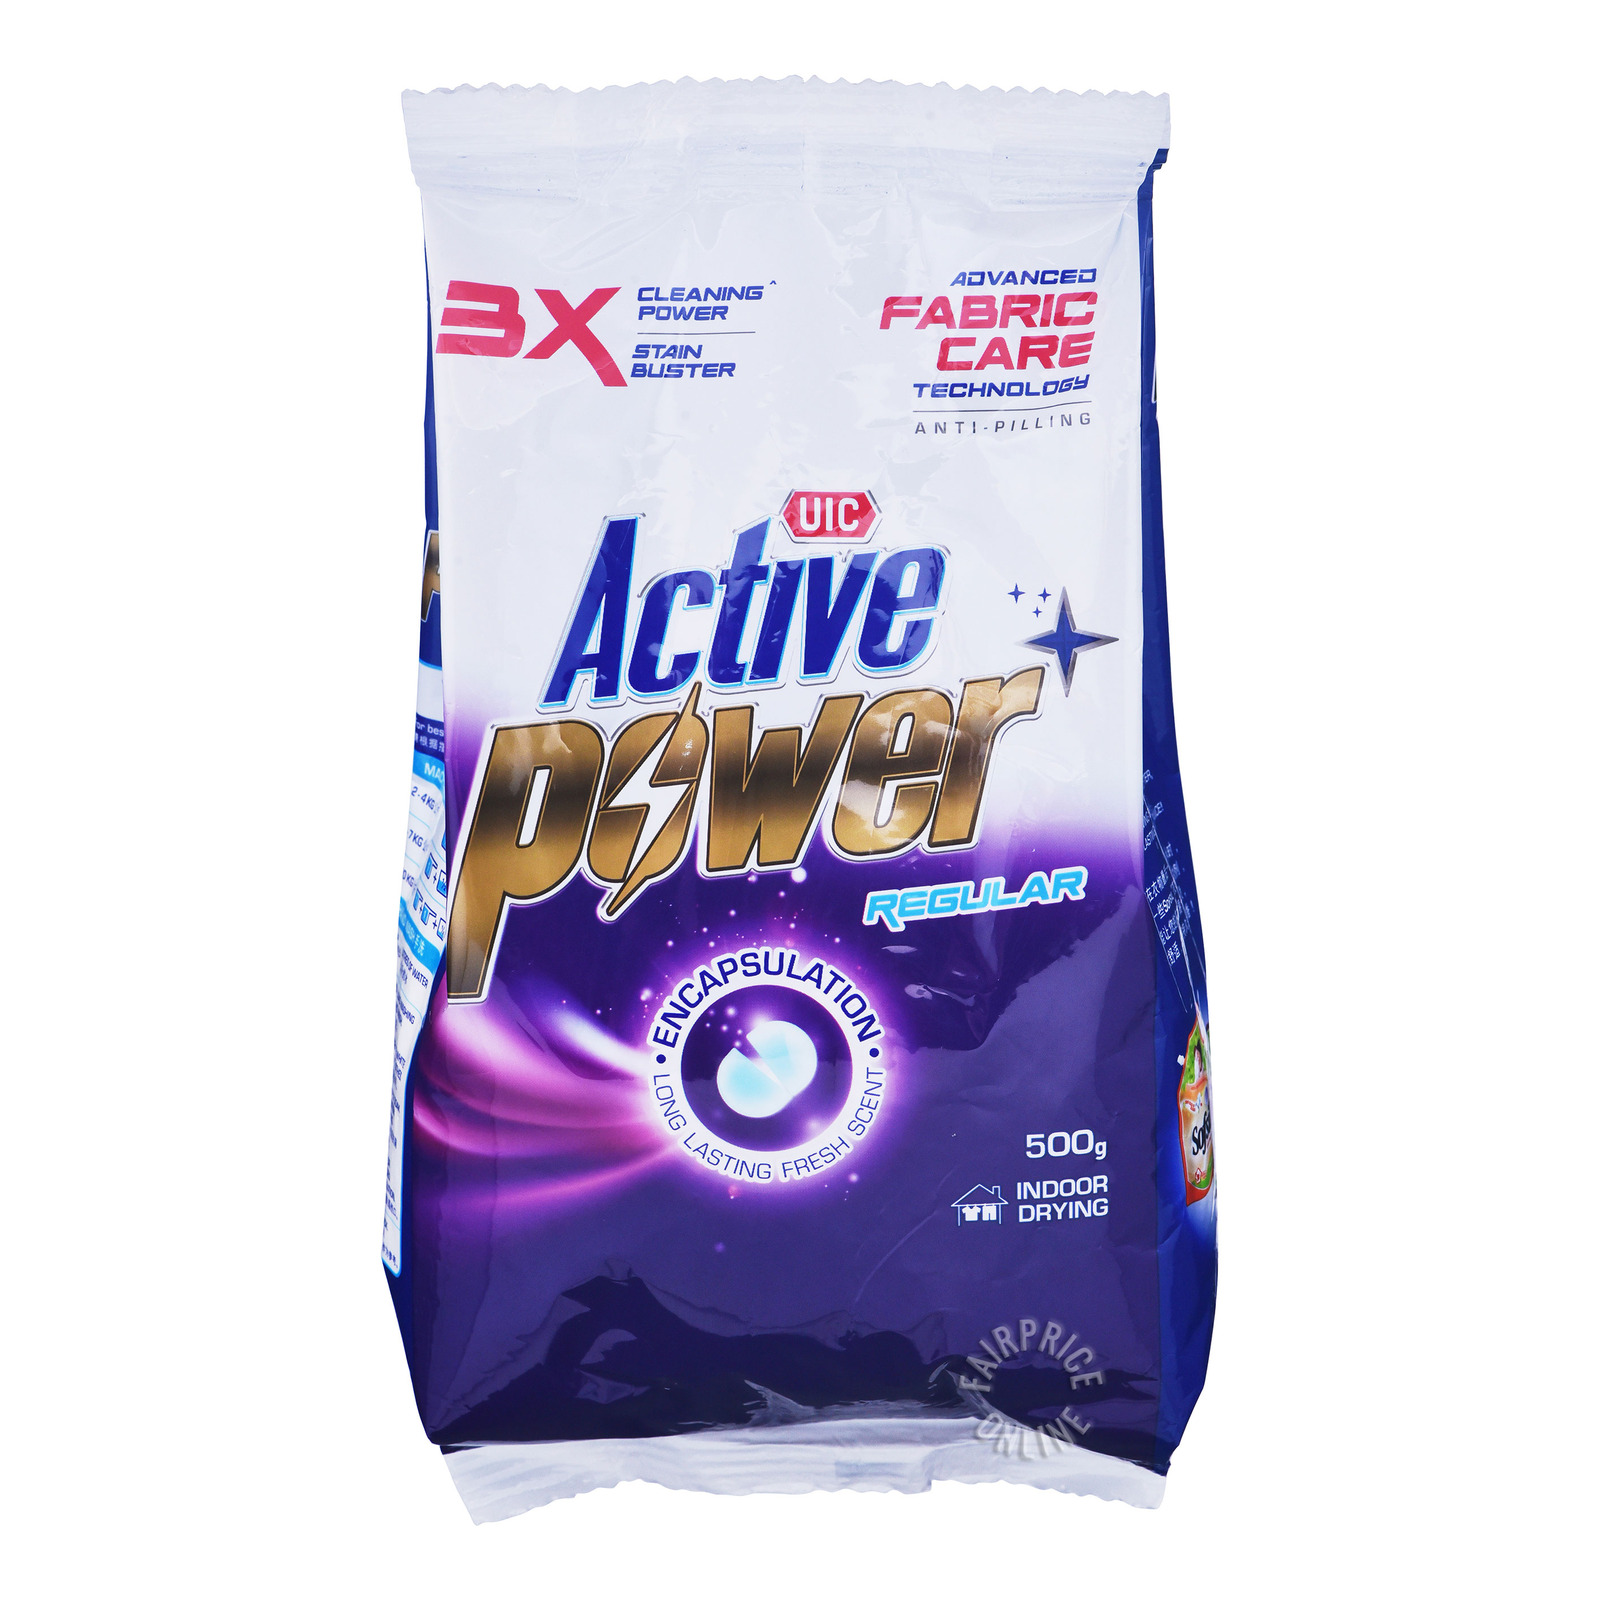 UIC Active Power Laundry Powder Detergent - Regular